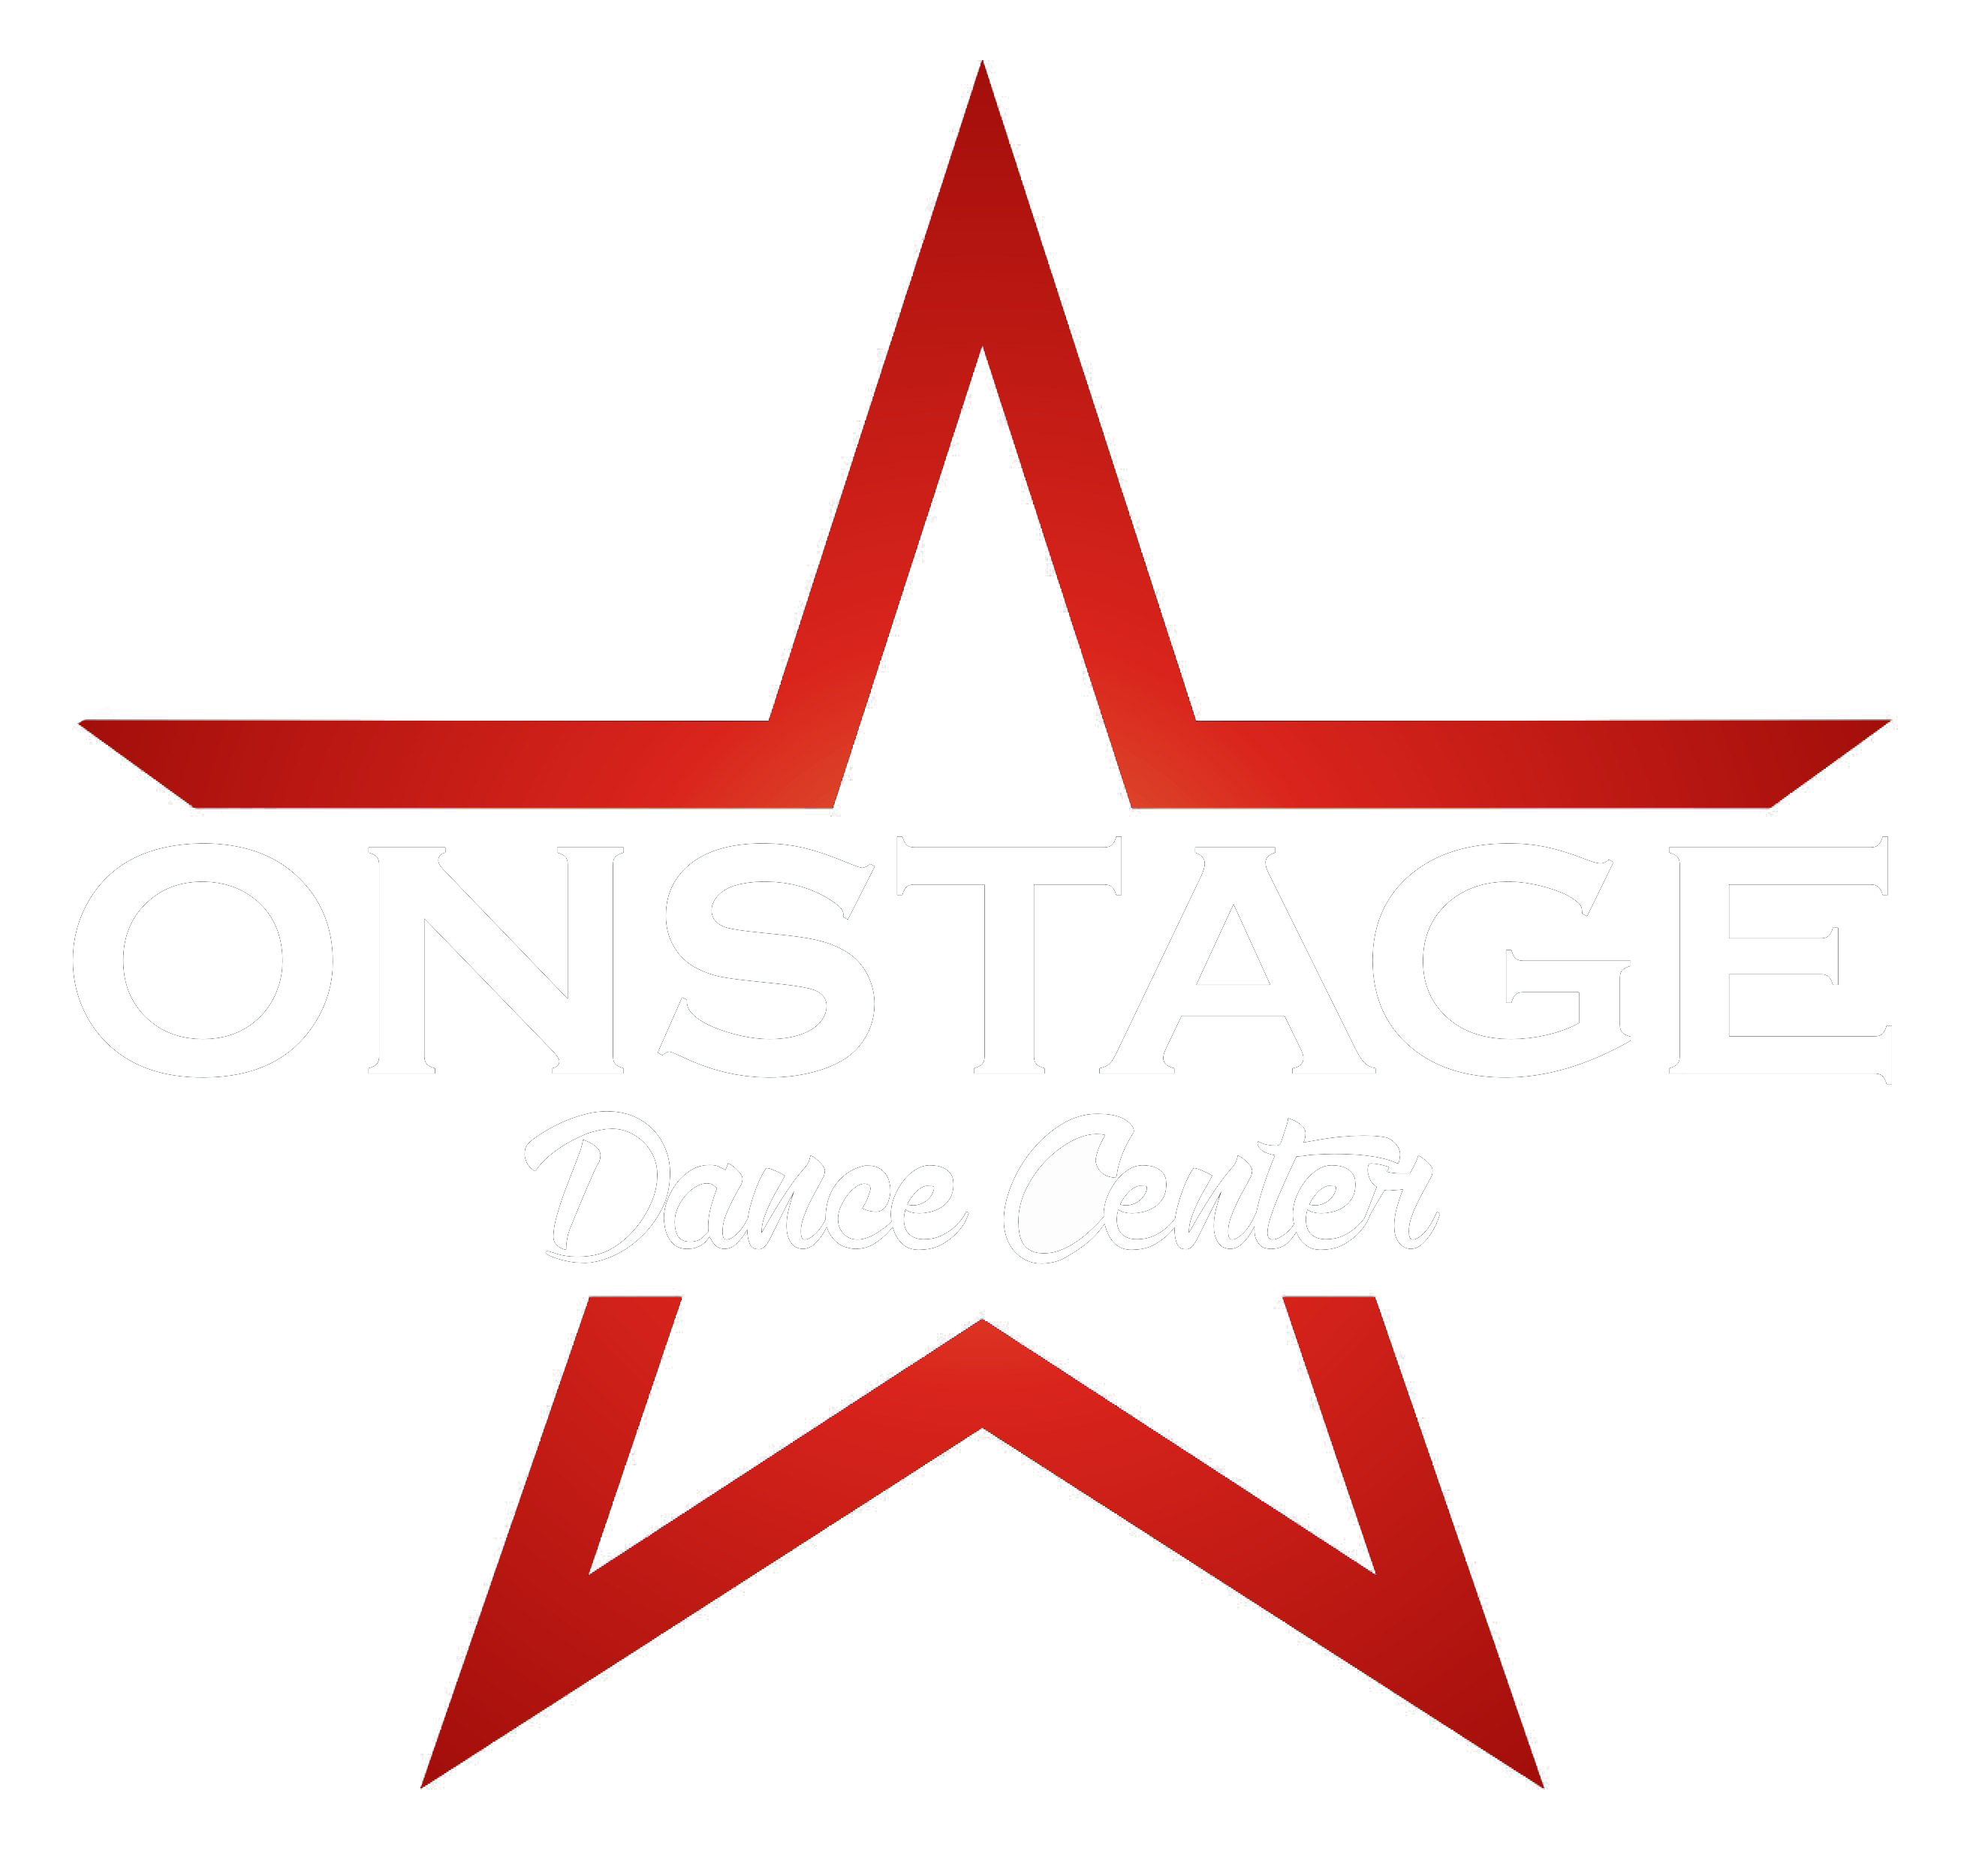 Onstage Dance Center – Just another WordPress site